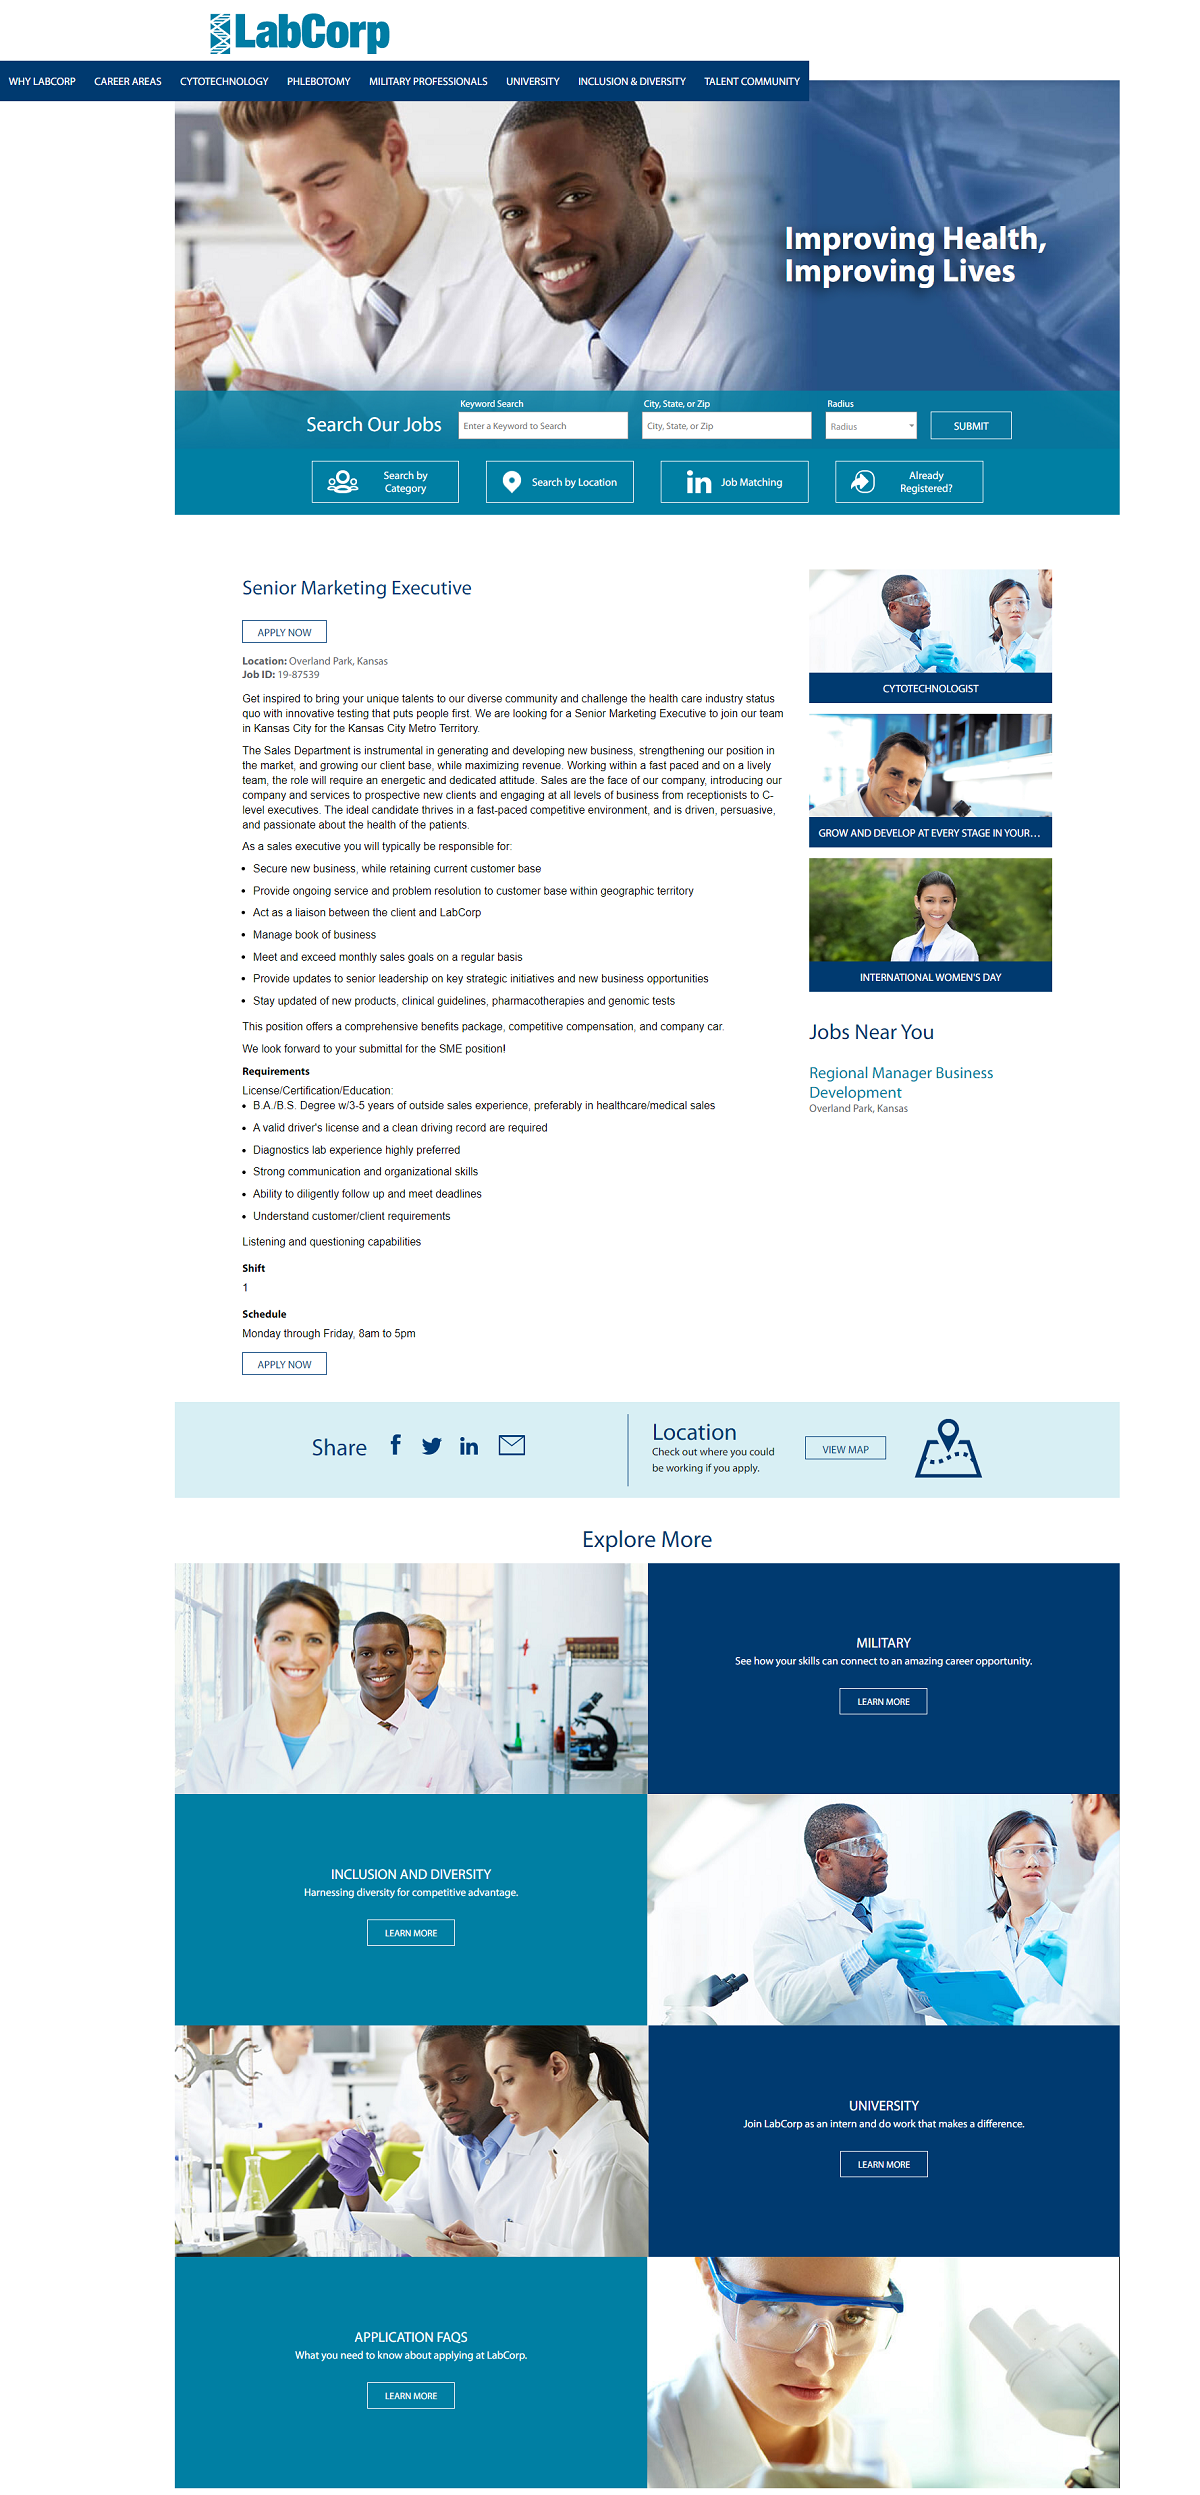 Labcorp job ads